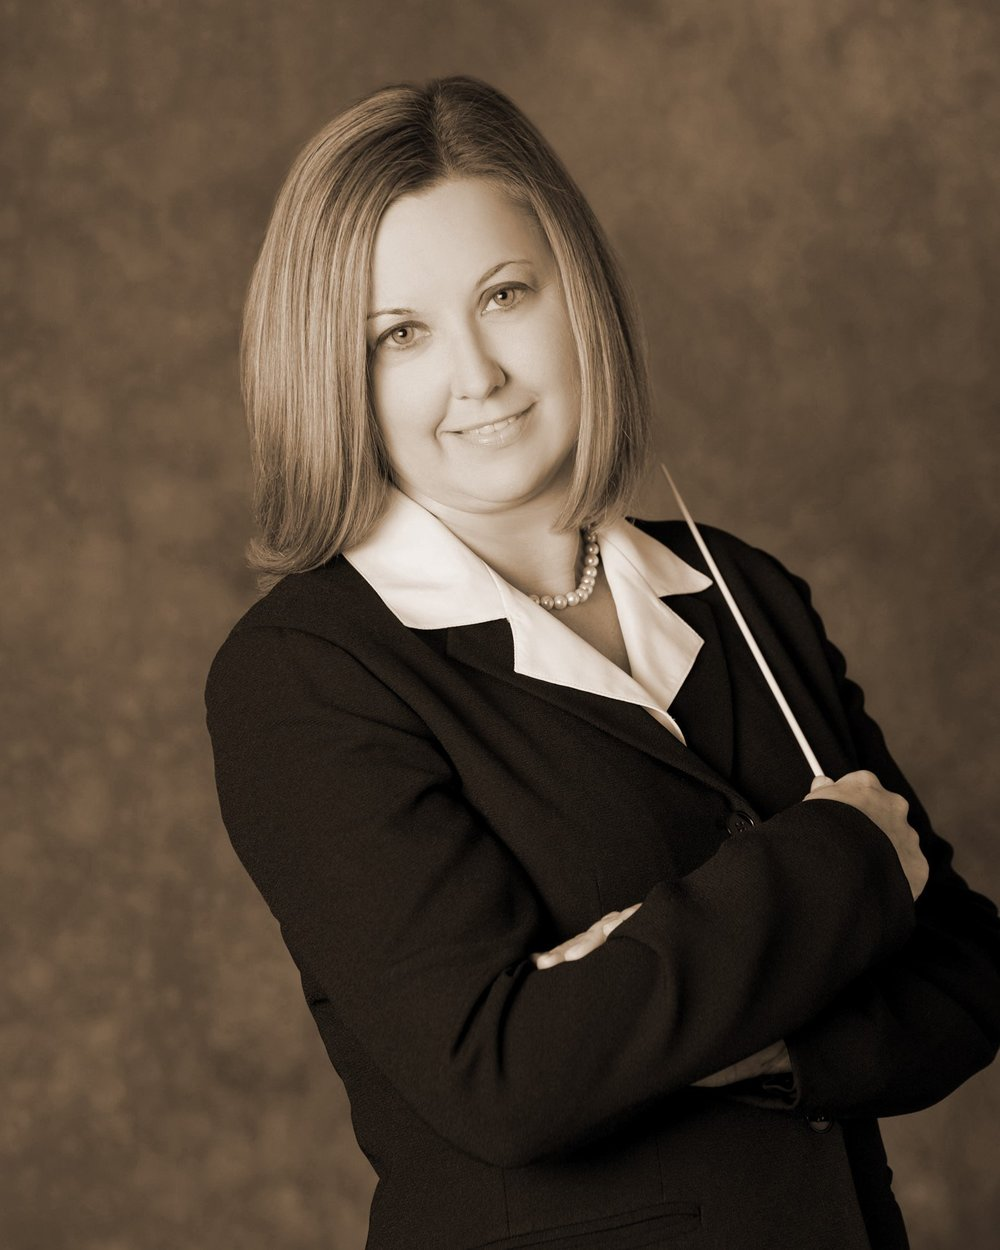 Presenter: Dr. Jenny Neff, University of the Arts, NAfME Council for Band-Eastern Division Representative